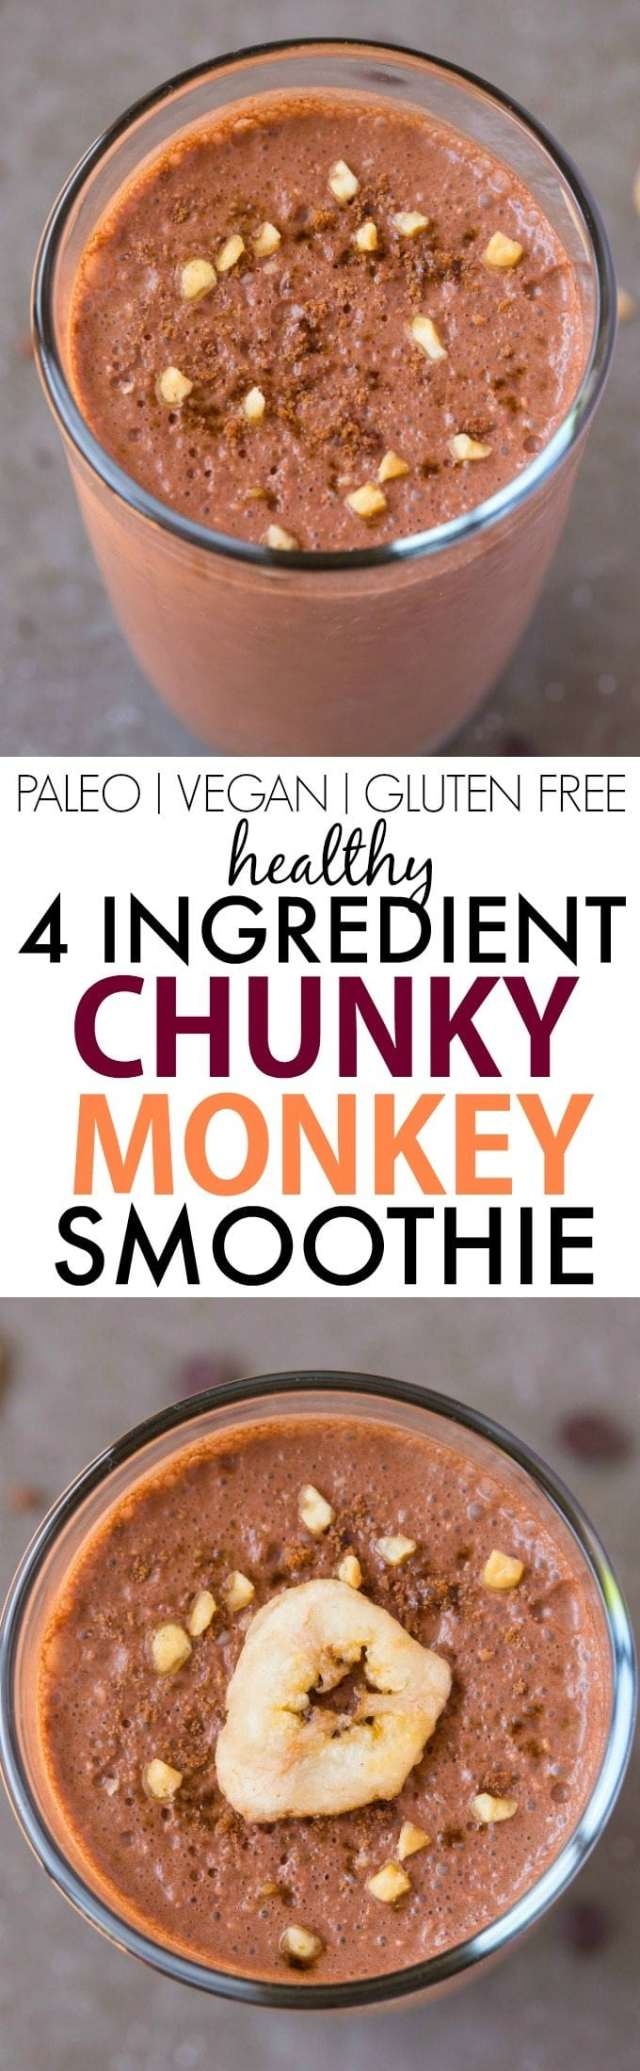 4 Ingredient Chunky Monkey Smoothie (V, GF, Paleo)- Thick, creamy and LOADED with delicious peanut butter and chocolate flavor! Protein-packed and satisfying! {vegan, gluten free, sugar free recipe}- thebigmansworld.com